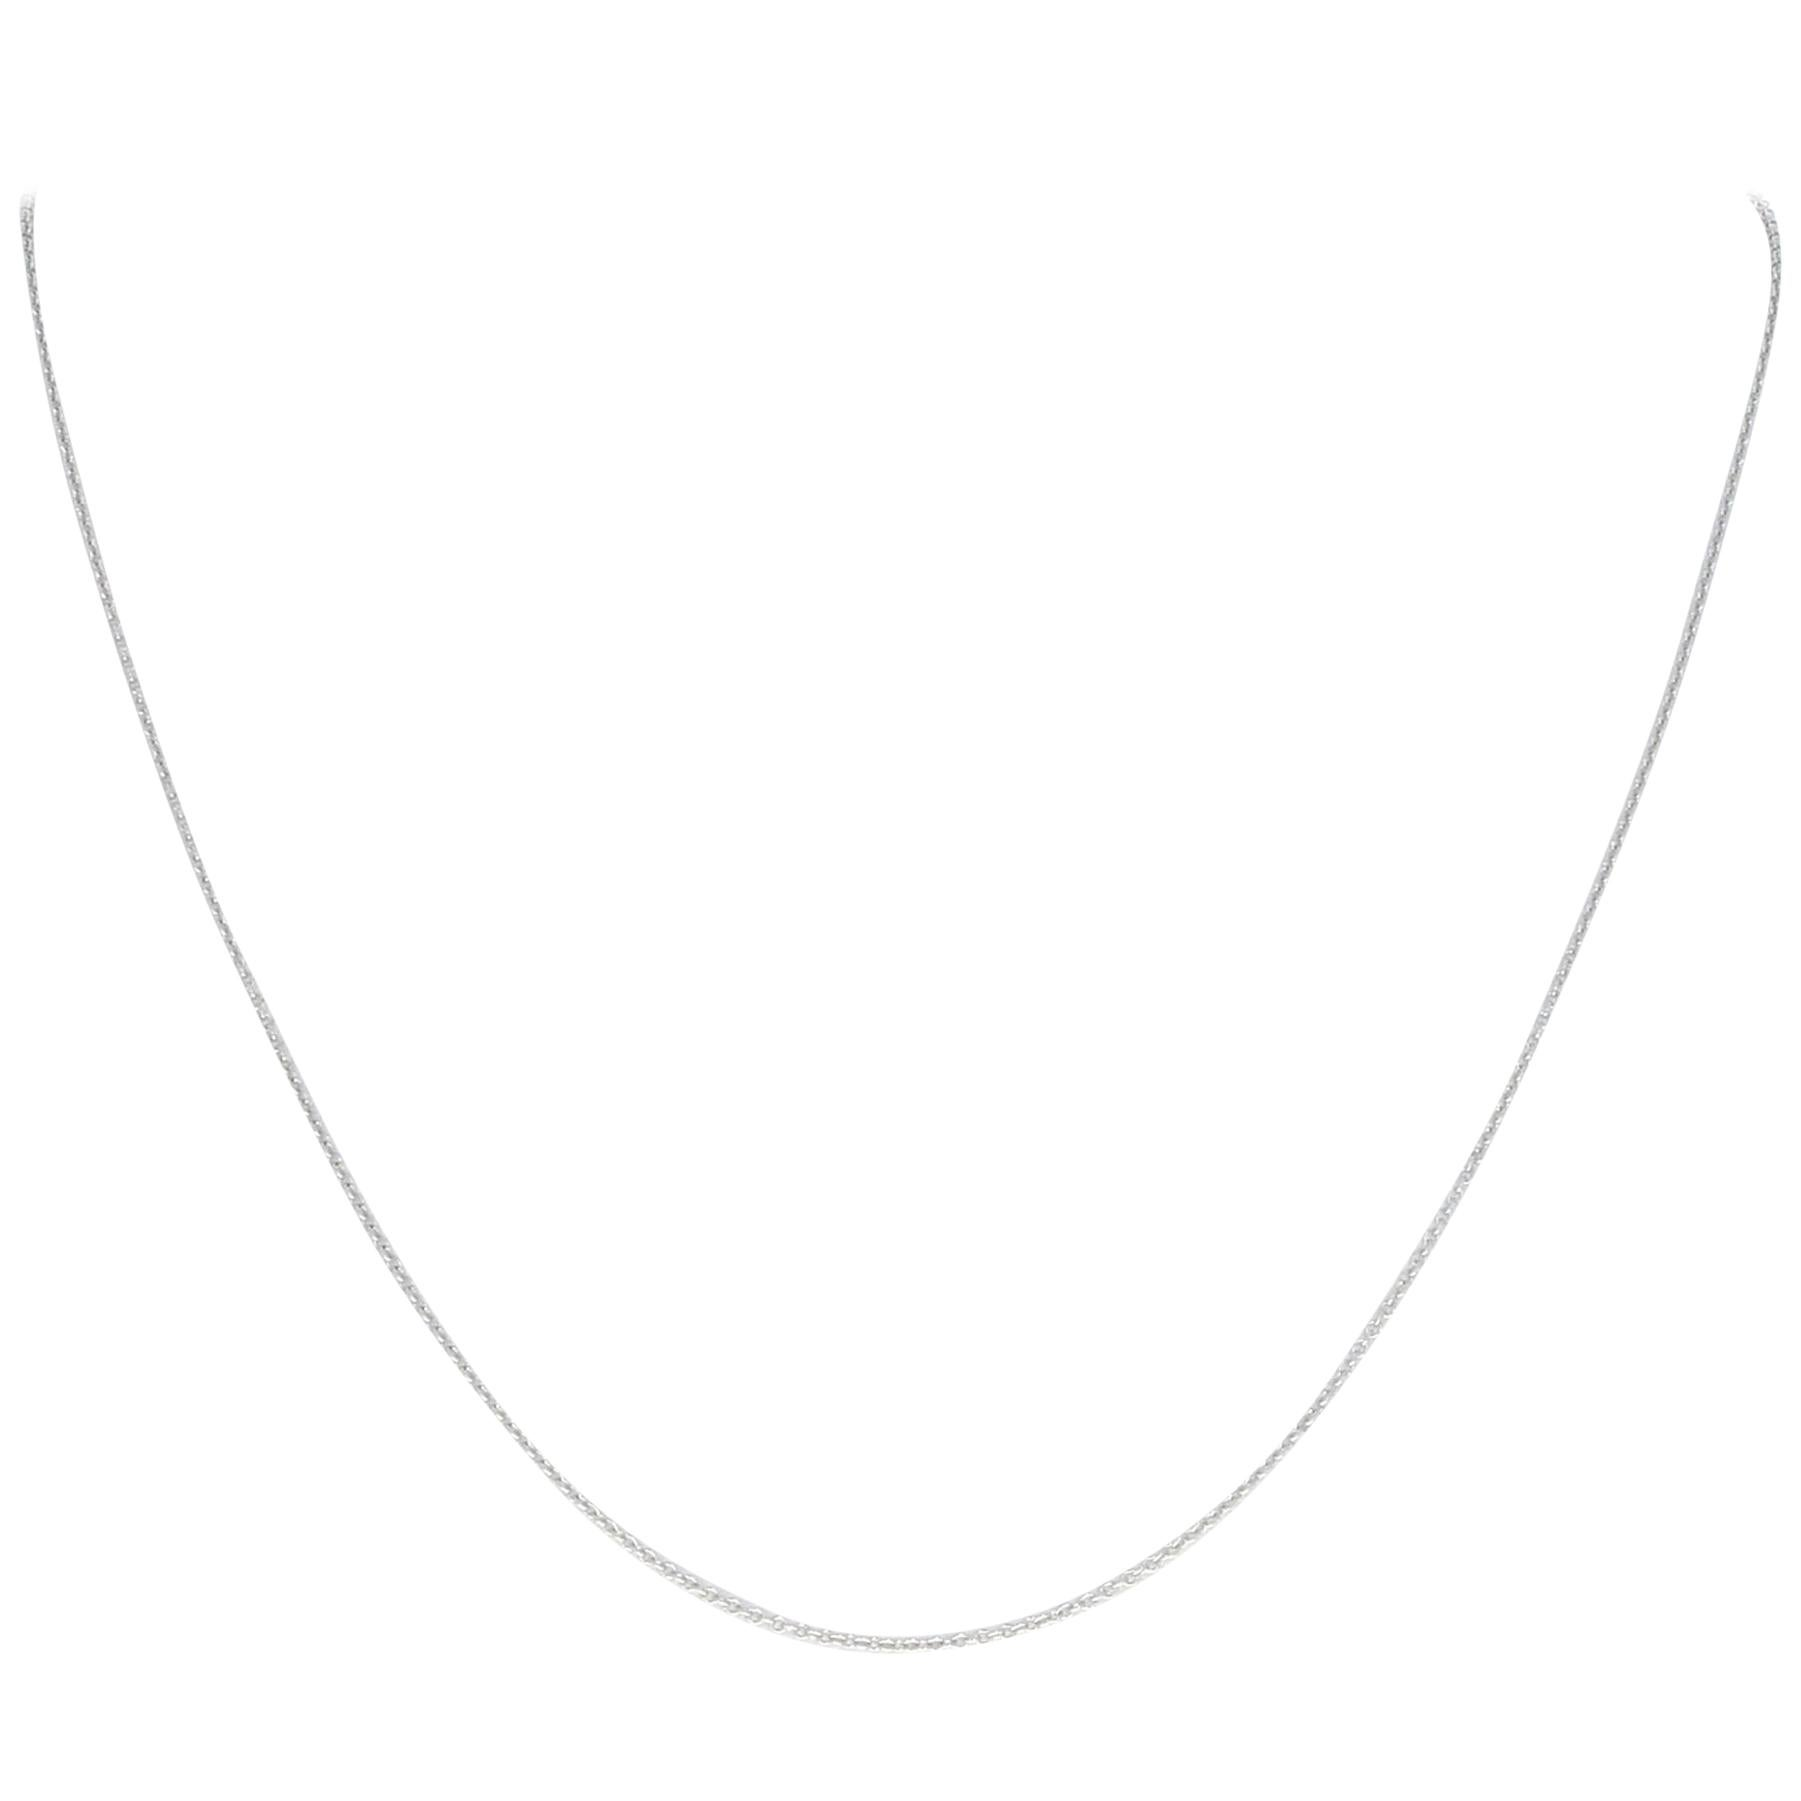 White Gold Cable Chain Necklace, 14 Karat Lobster Claw Clasp, Italy